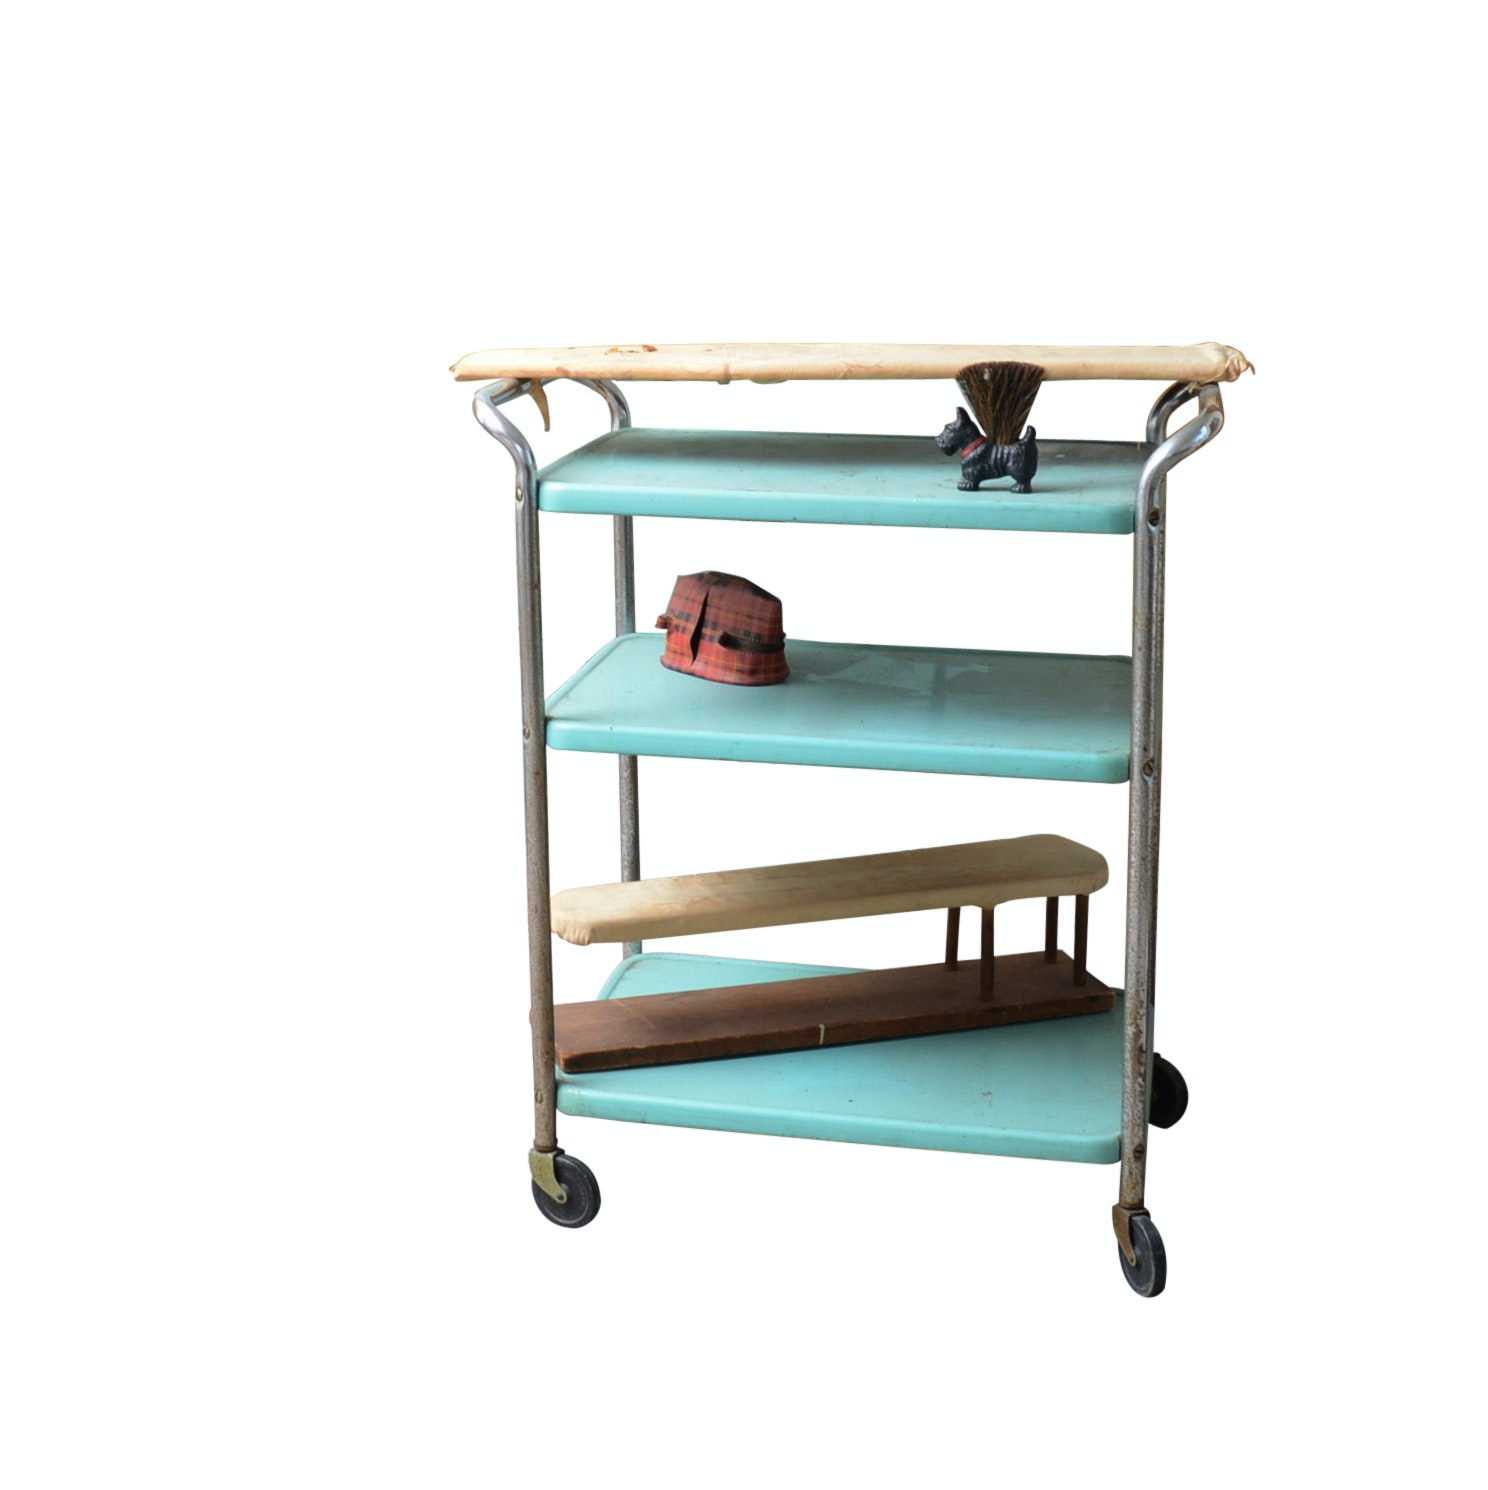 Wood Ironing Boards, Kitchen Cart, and More